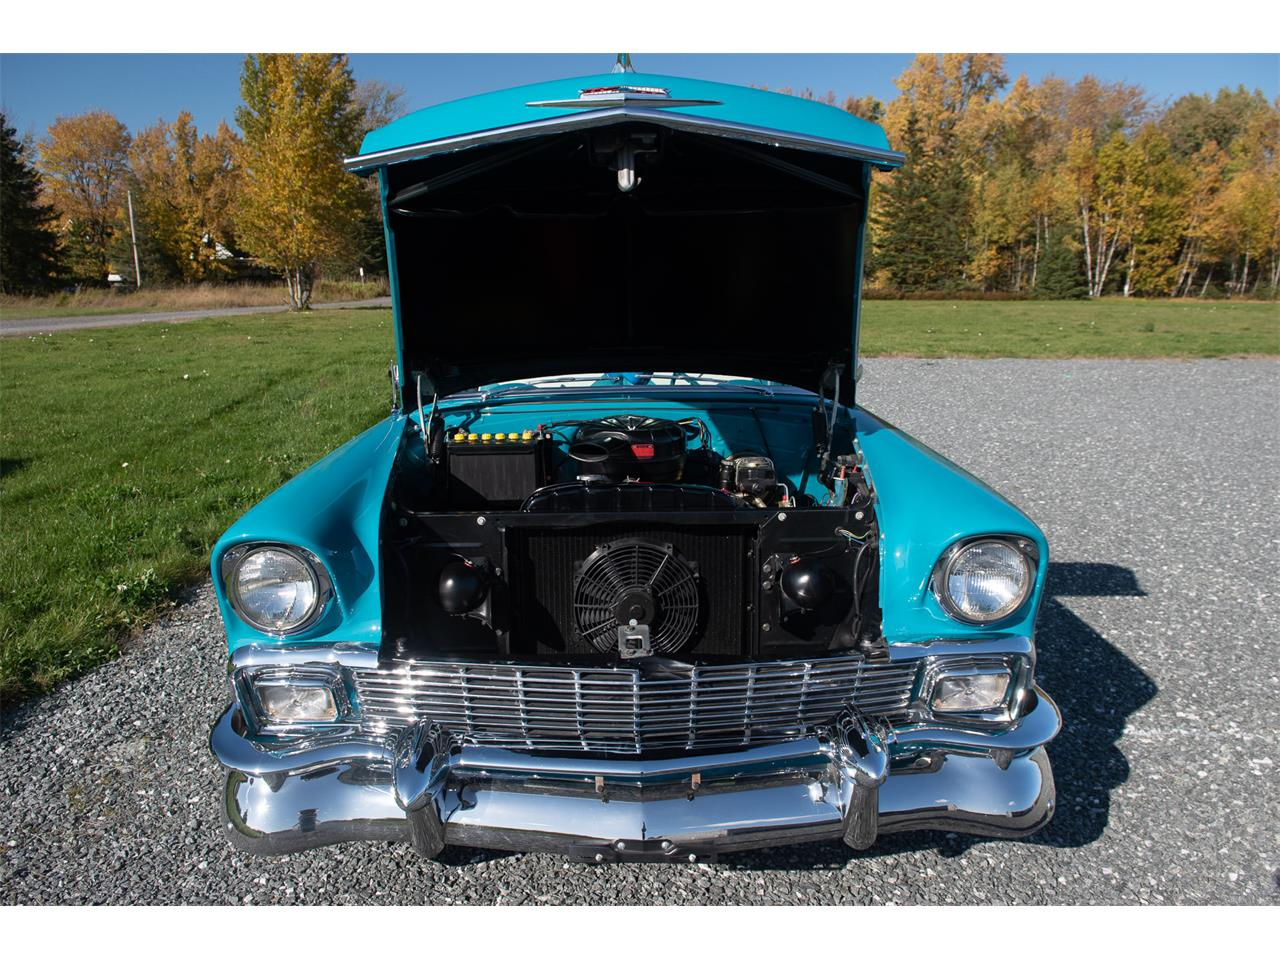 1956 Chevrolet Bel Air (CC-1275005) for sale in SUDBURY, Ontario